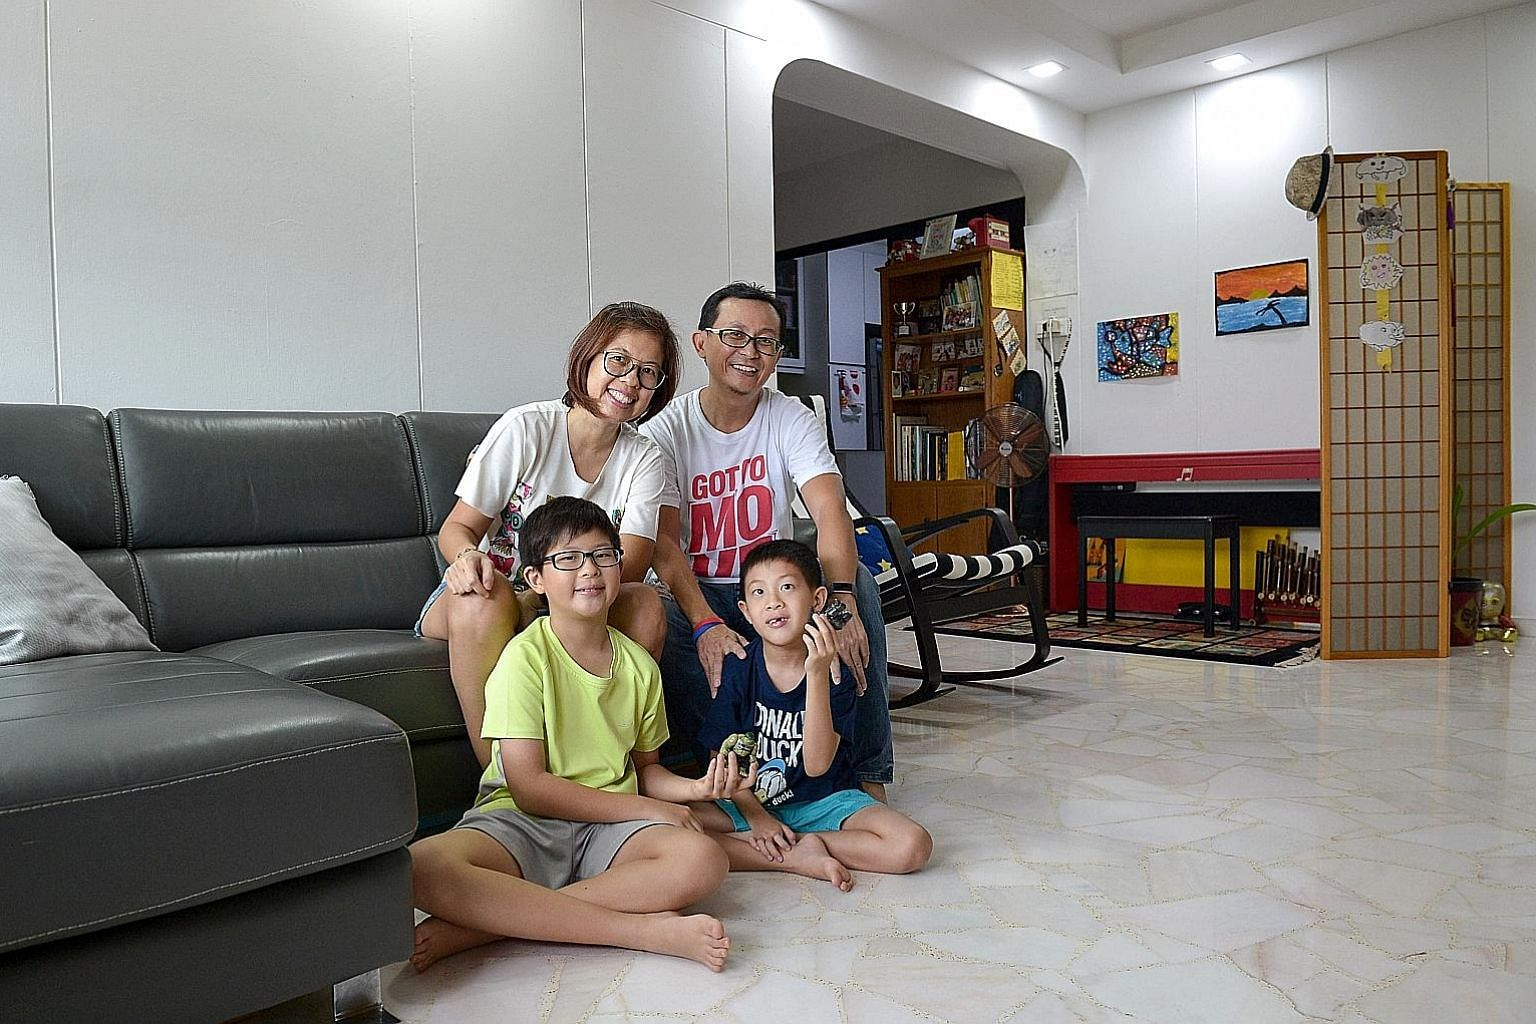 Former poly lecturer Kelvin Seah, 49, gave up his job last year to care for his sons Jaedon, 10, and Caleb, eight. His wife, Ms Lim Shaw Hui, 47, is a social worker.